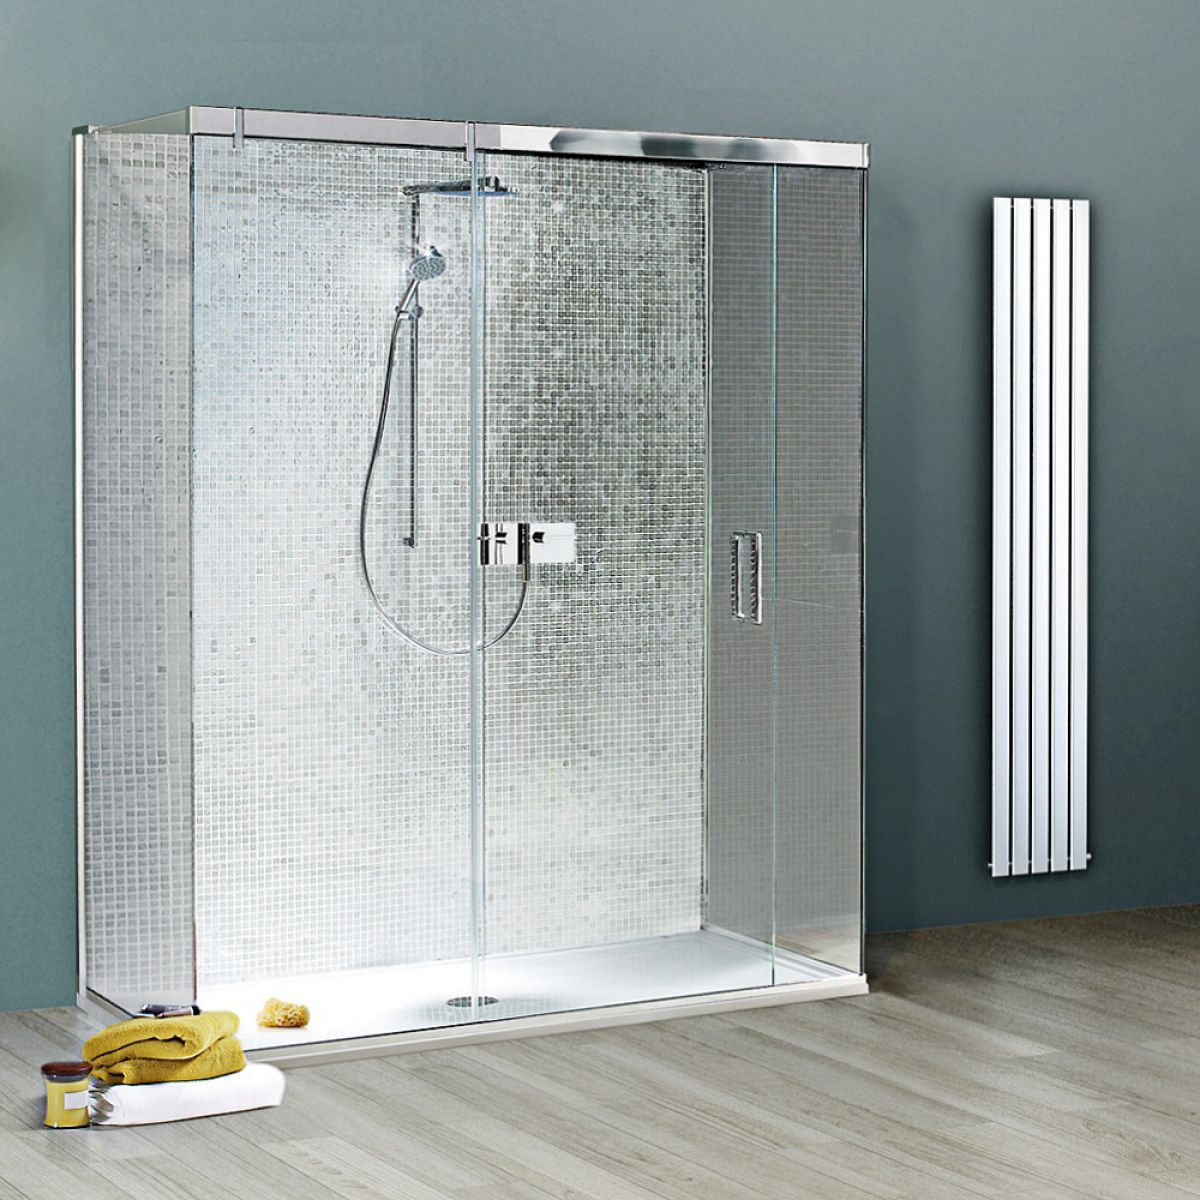 Matki Eauzone Plus Three Sided Sliding Door Shower Enclosure : UK ...